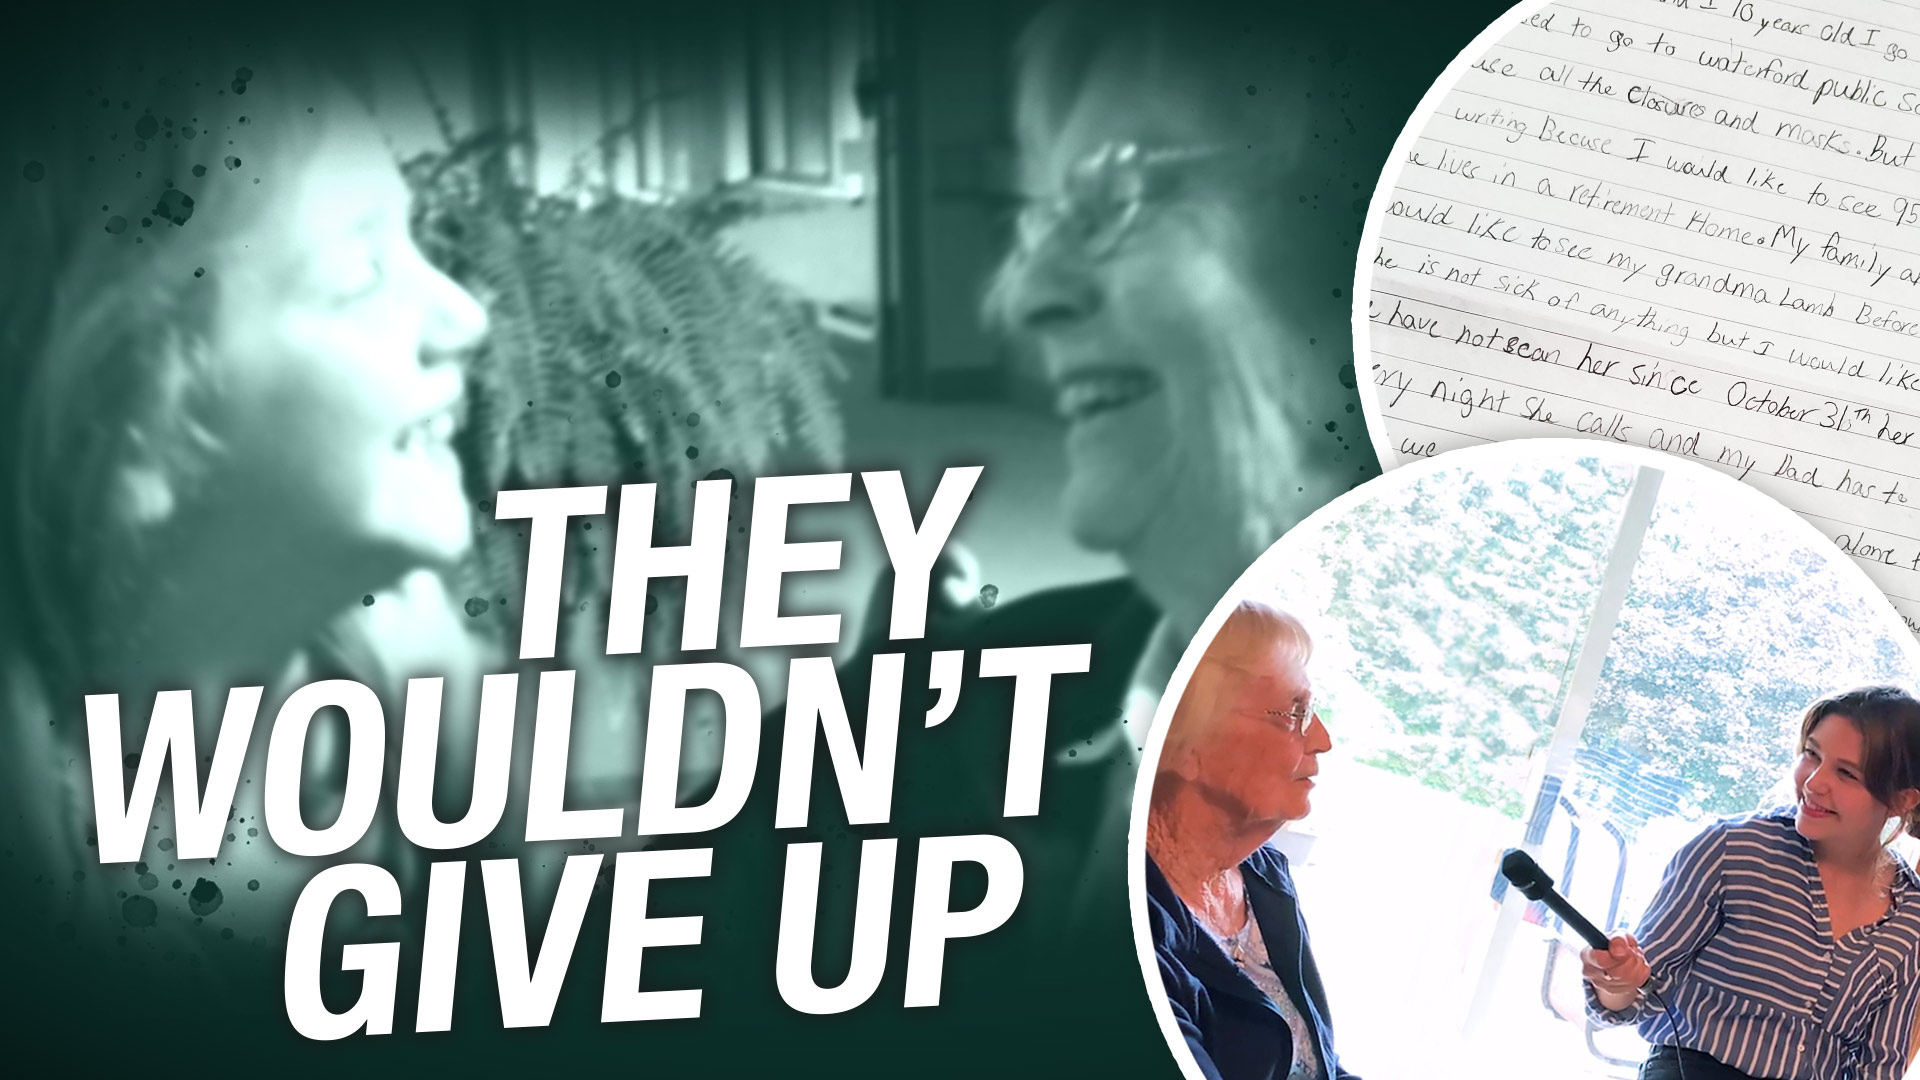 VICTORY: Rebel News helps 95-year-old see her family after being denied because she was unvaccinated